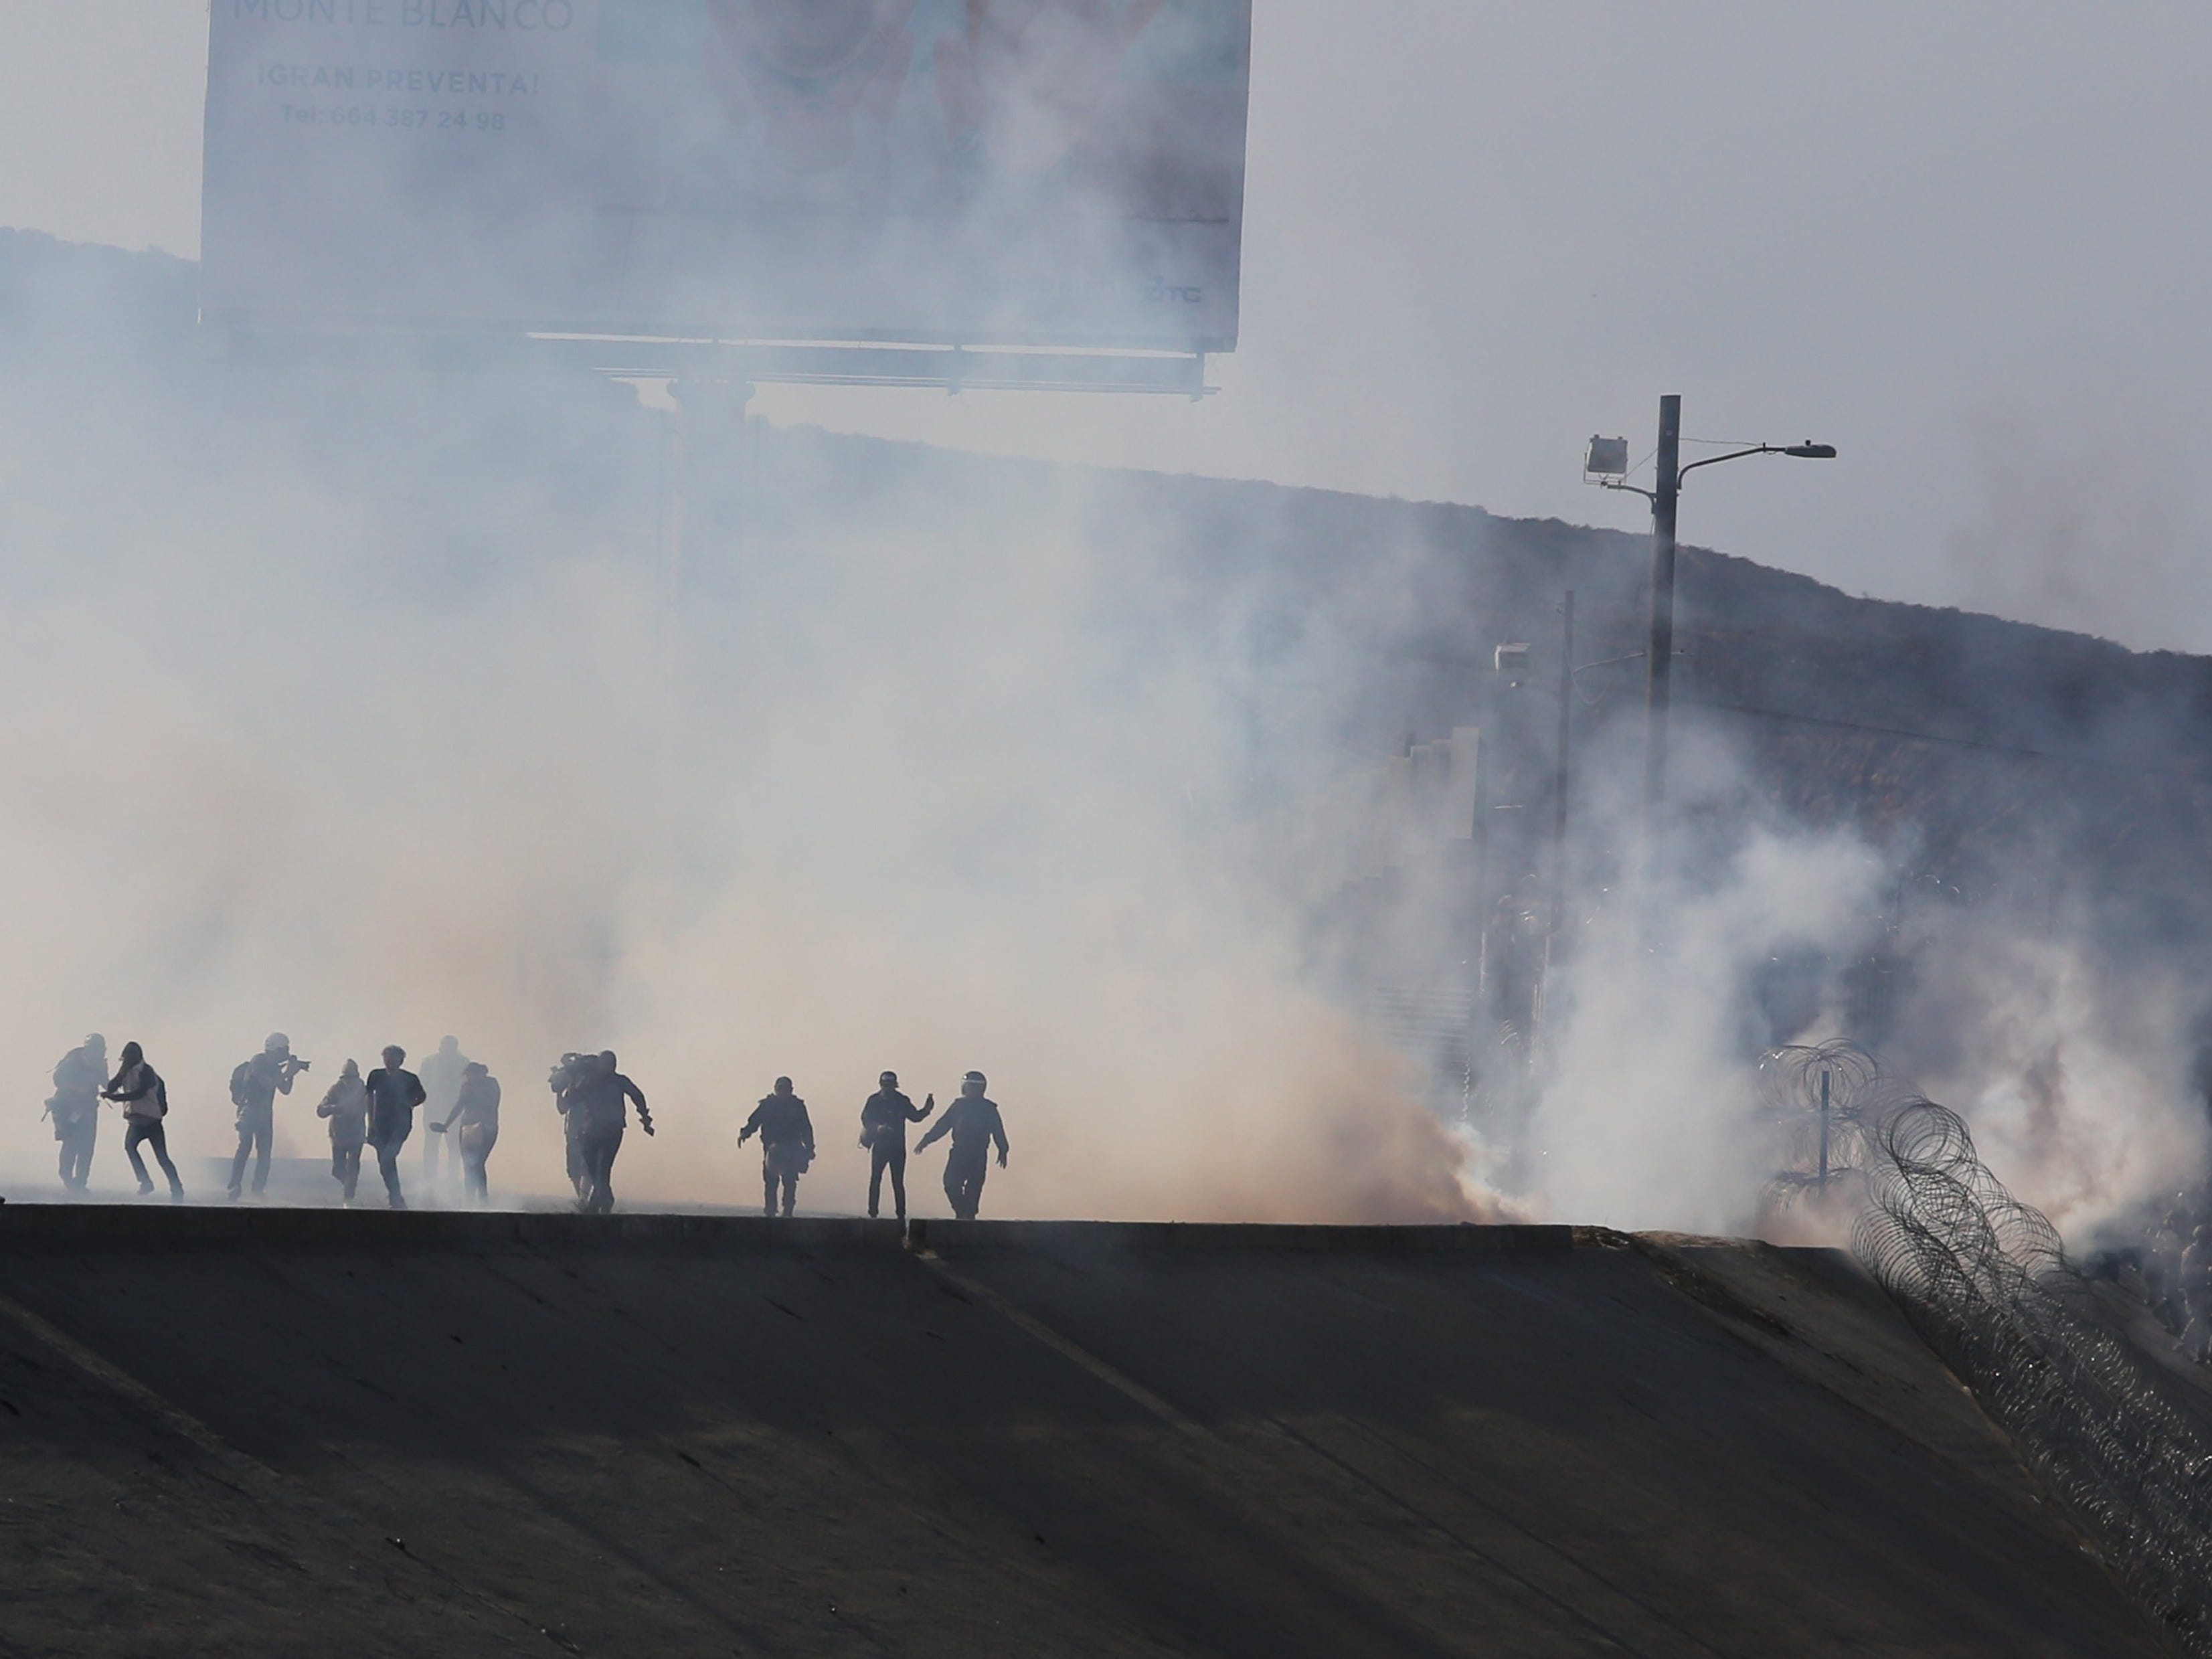 Tear gas is used by border police to prevent groups of people from crossing El Chaparral, in Tijuana, Mexico, Nov. 25, 2018. A group of migrants from the caravan of Central Americans who advanced towards the San Ysidro gateway deviated from the planned route to try to cross the border wall by other points.